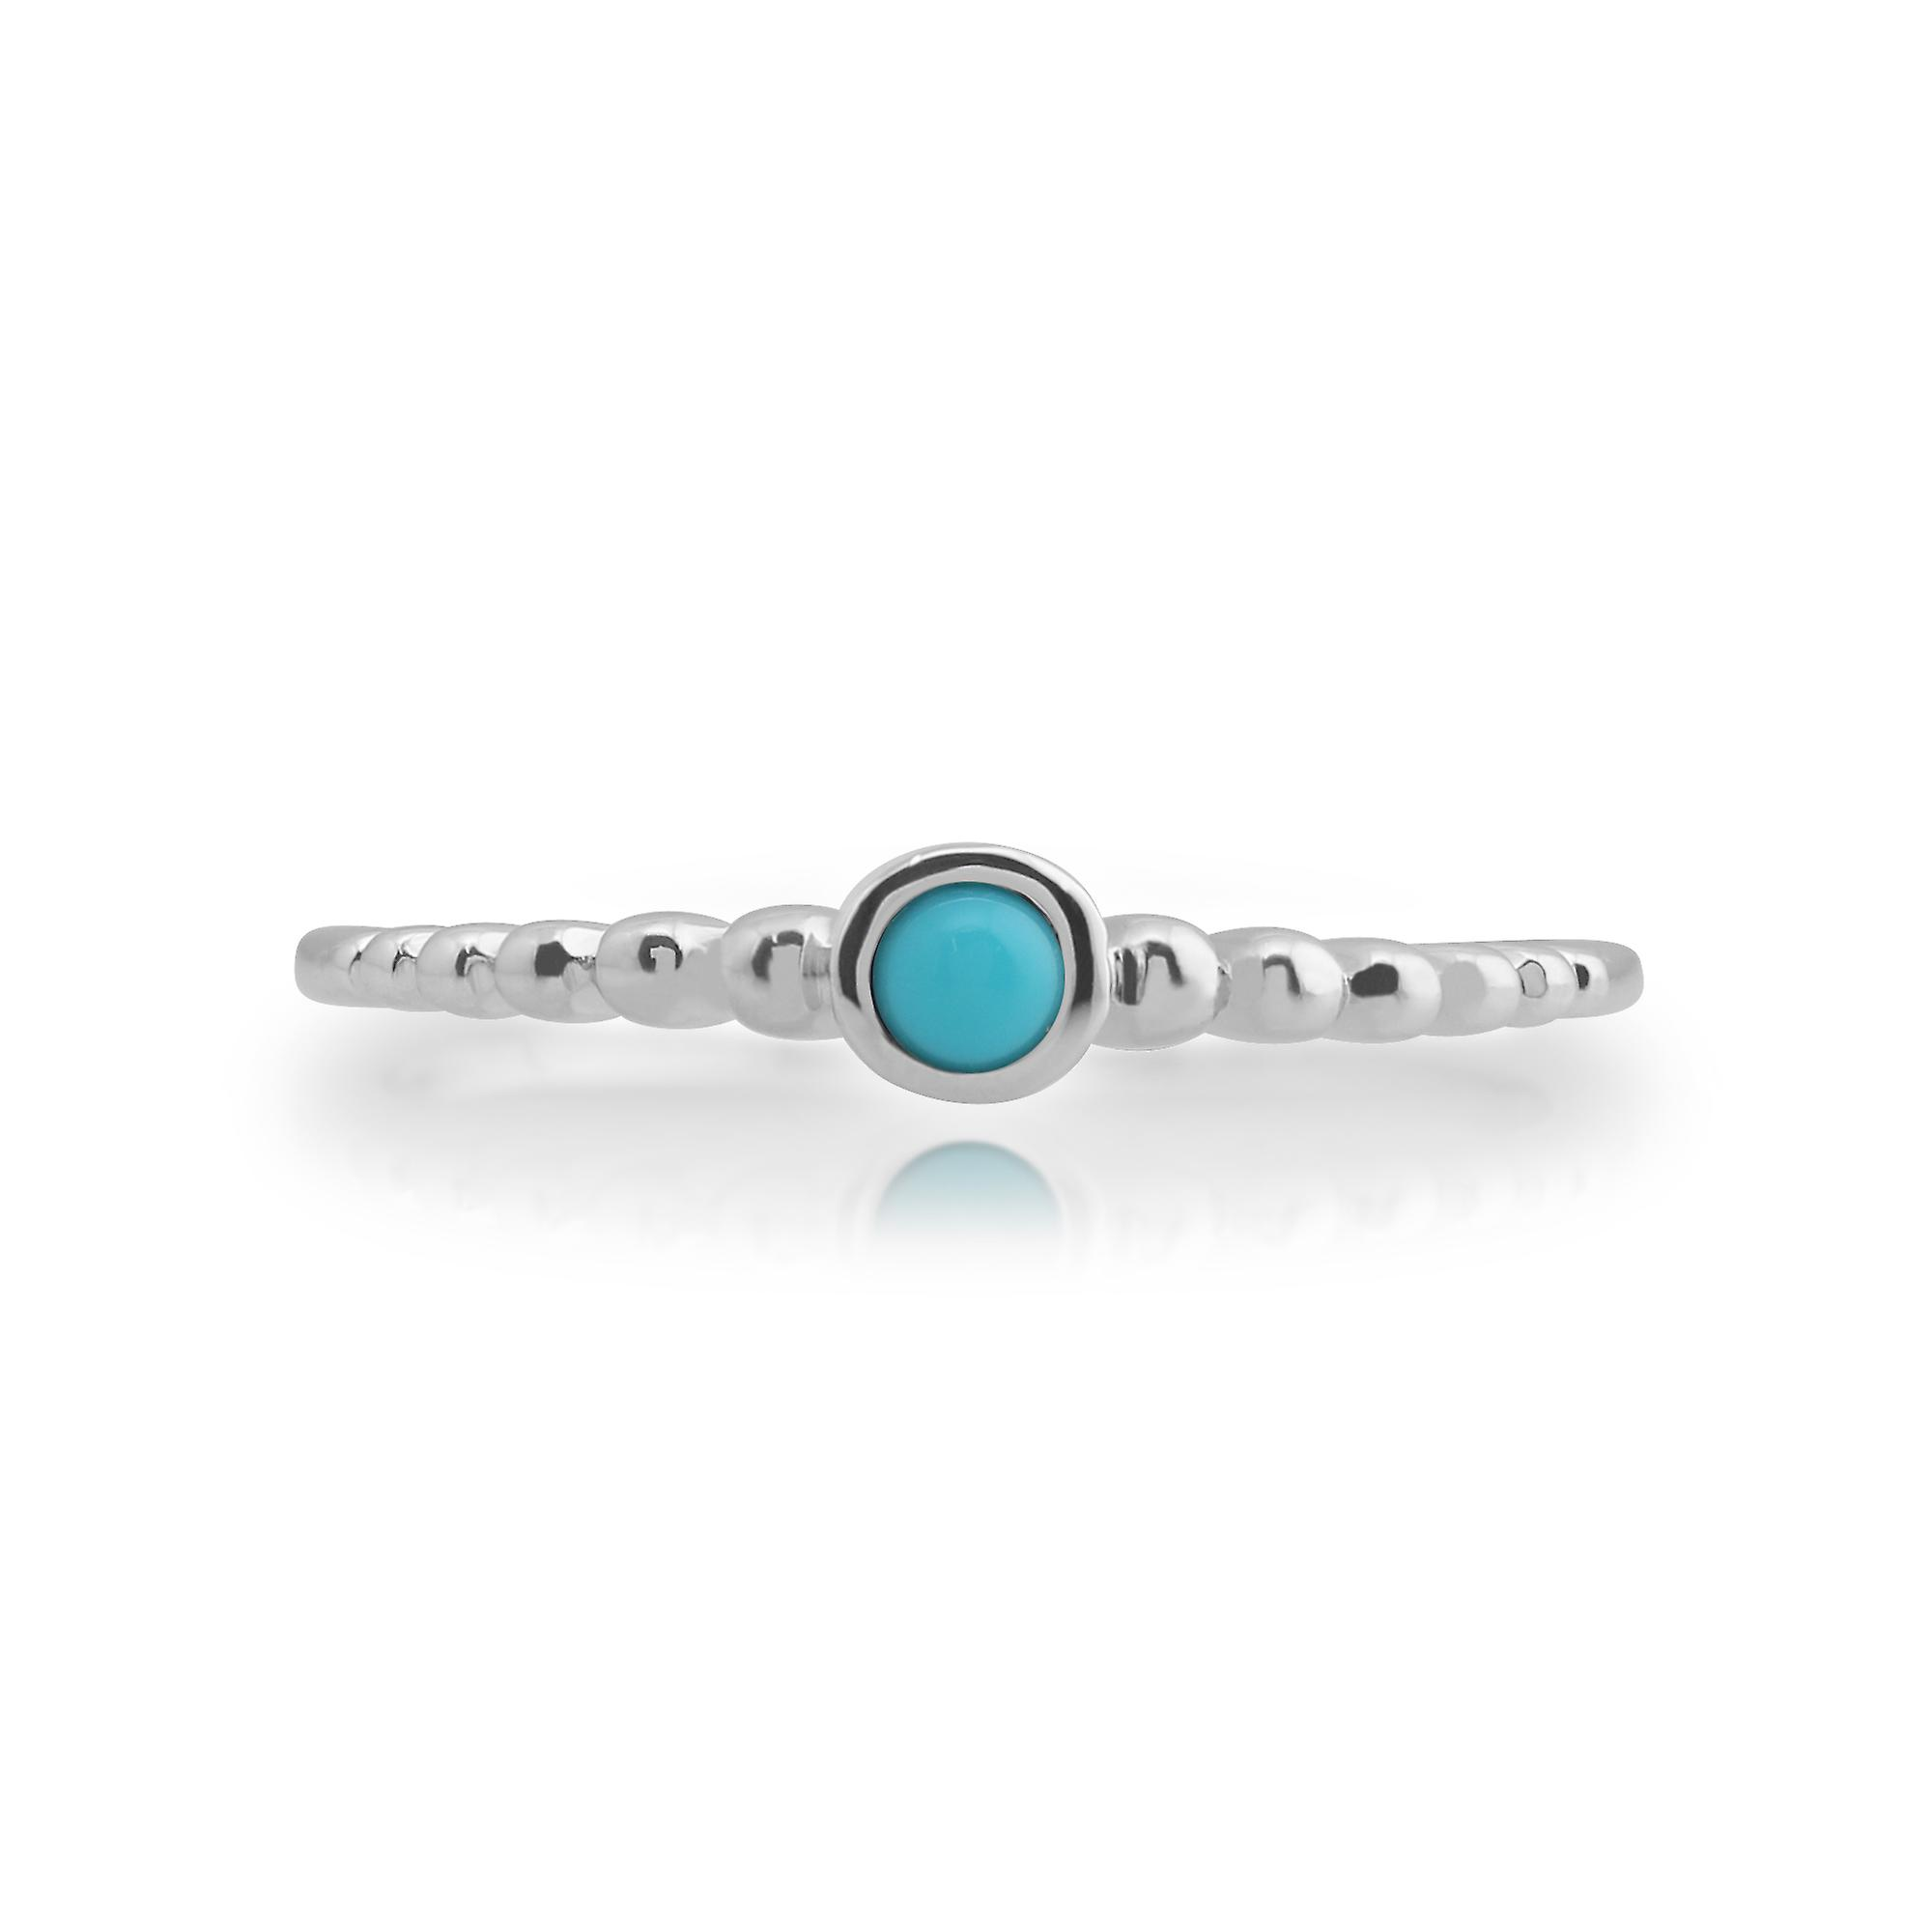 Gemondo 925 Sterling Silver 0.15ct Turquoise Stackable Birthstone Ring